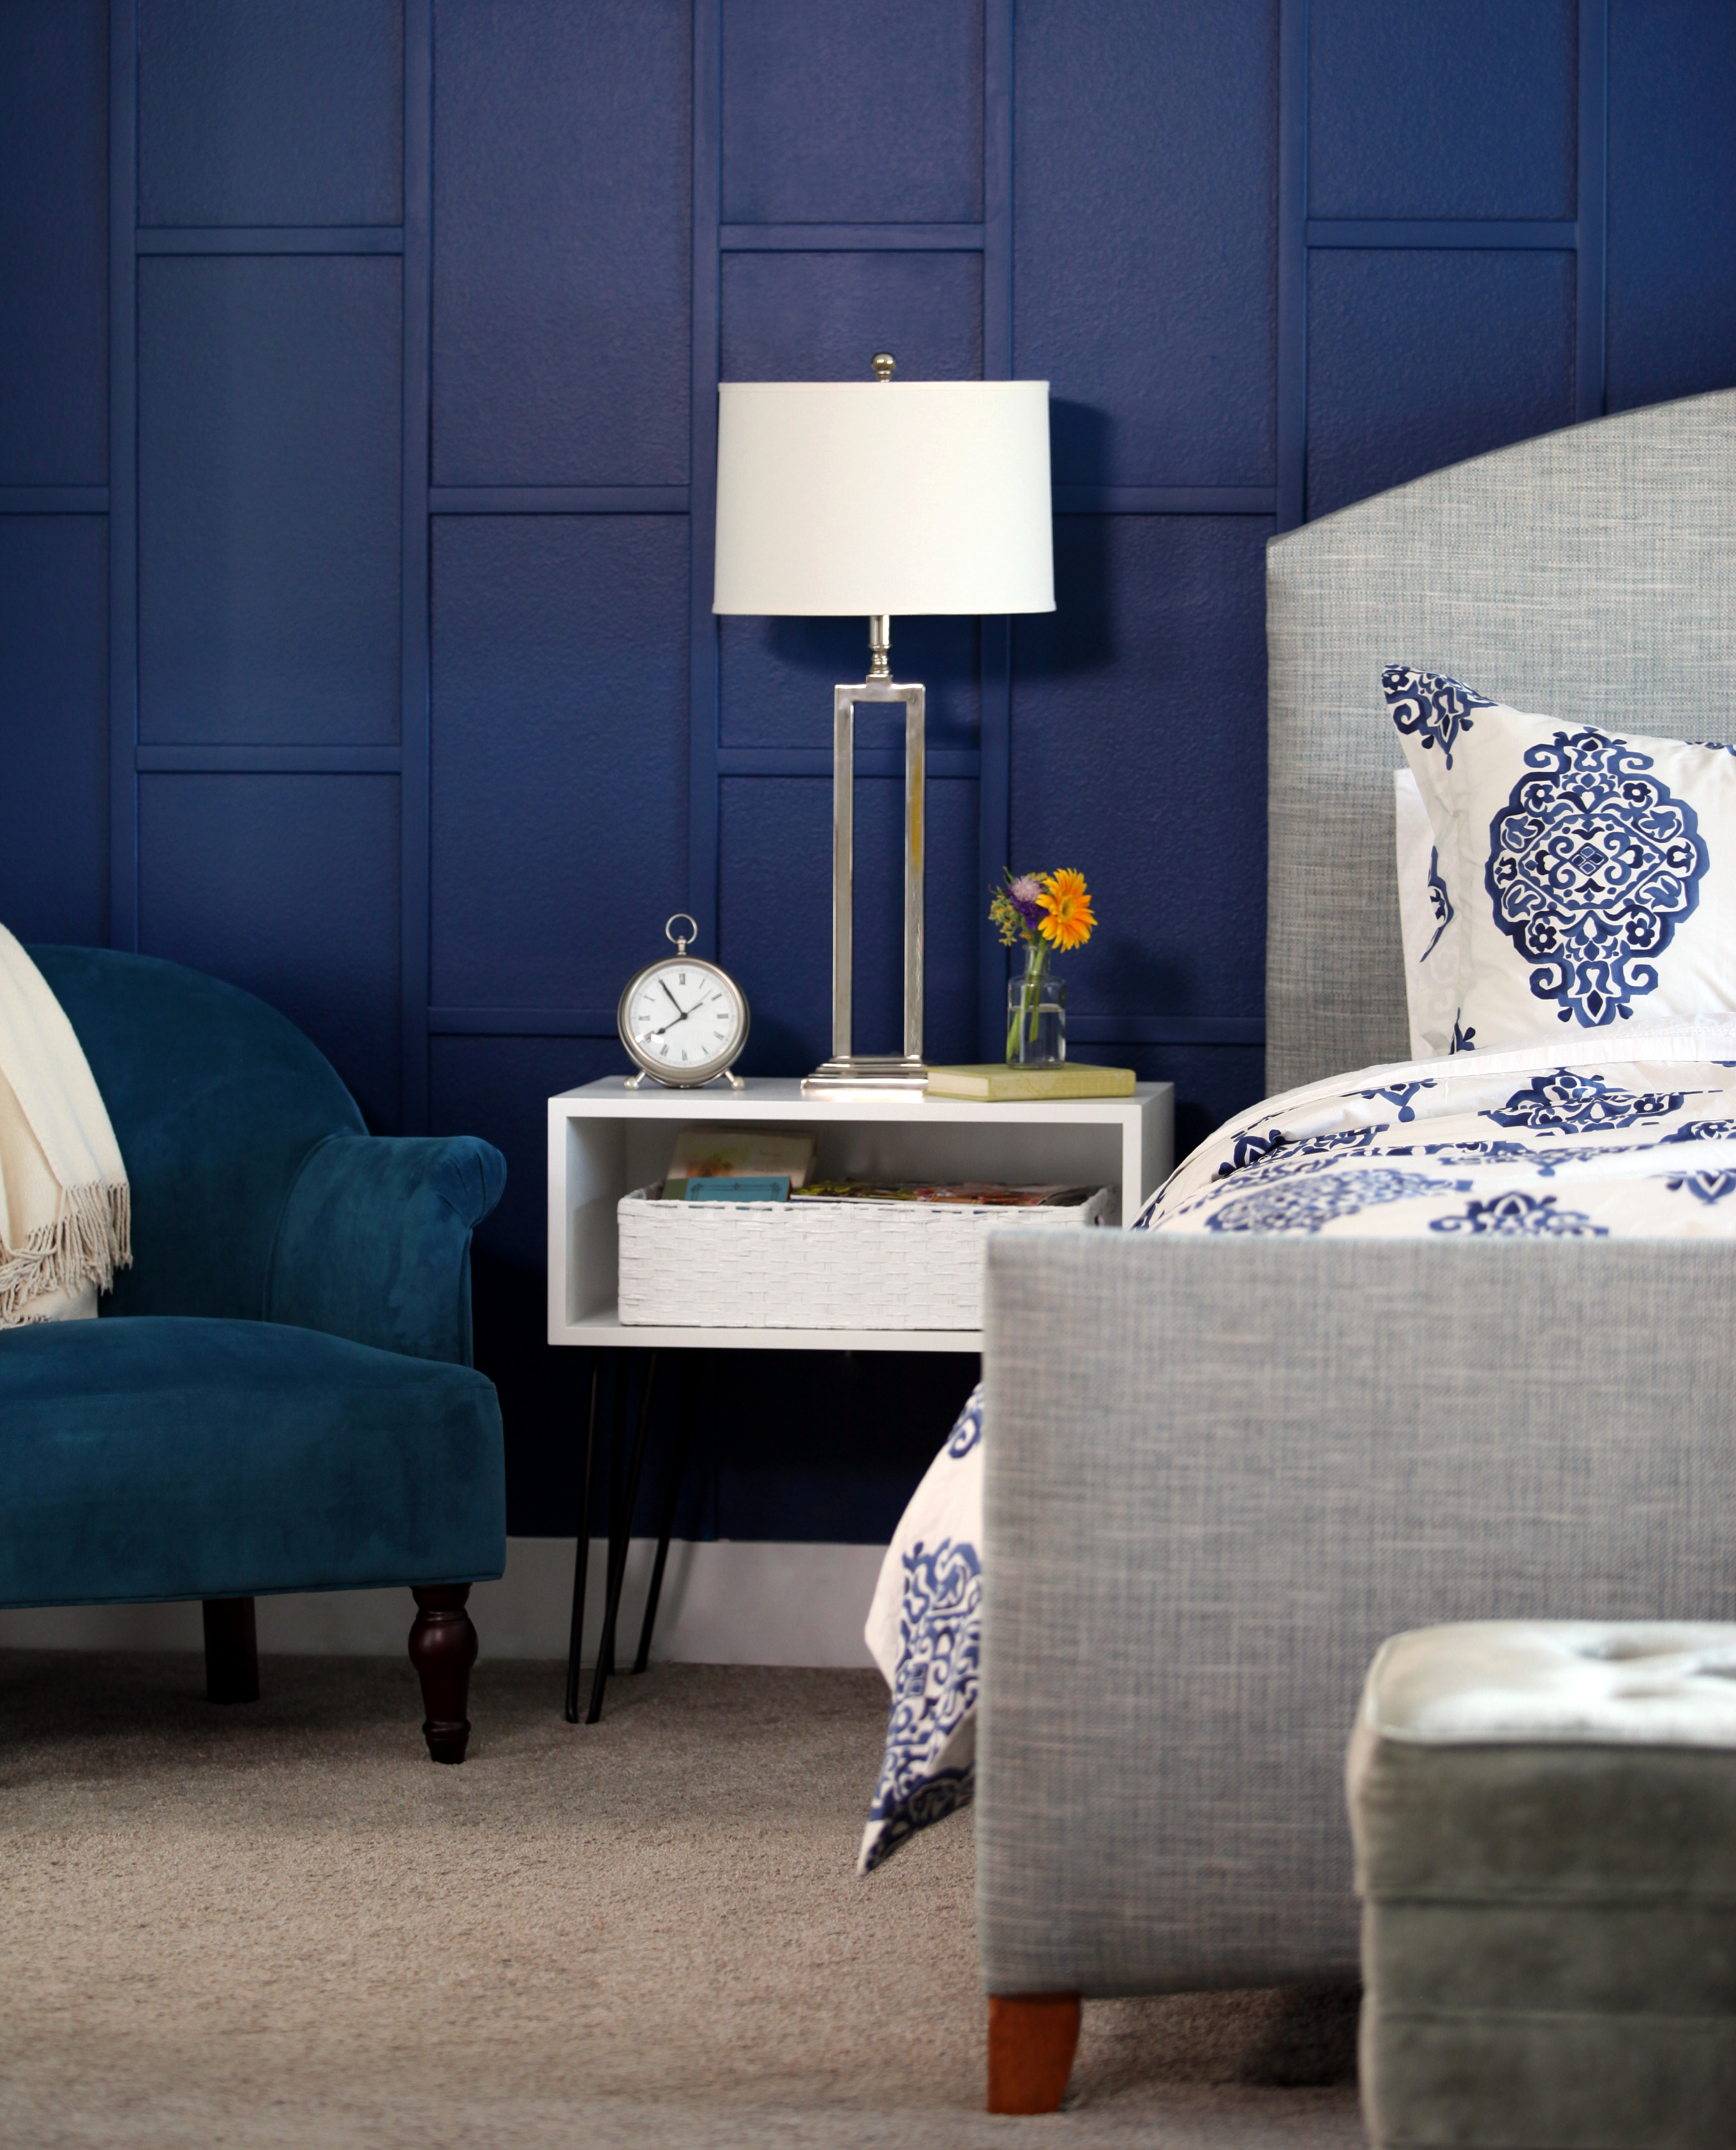 This Glam Bedroom Makeover Was Done in a Weekend